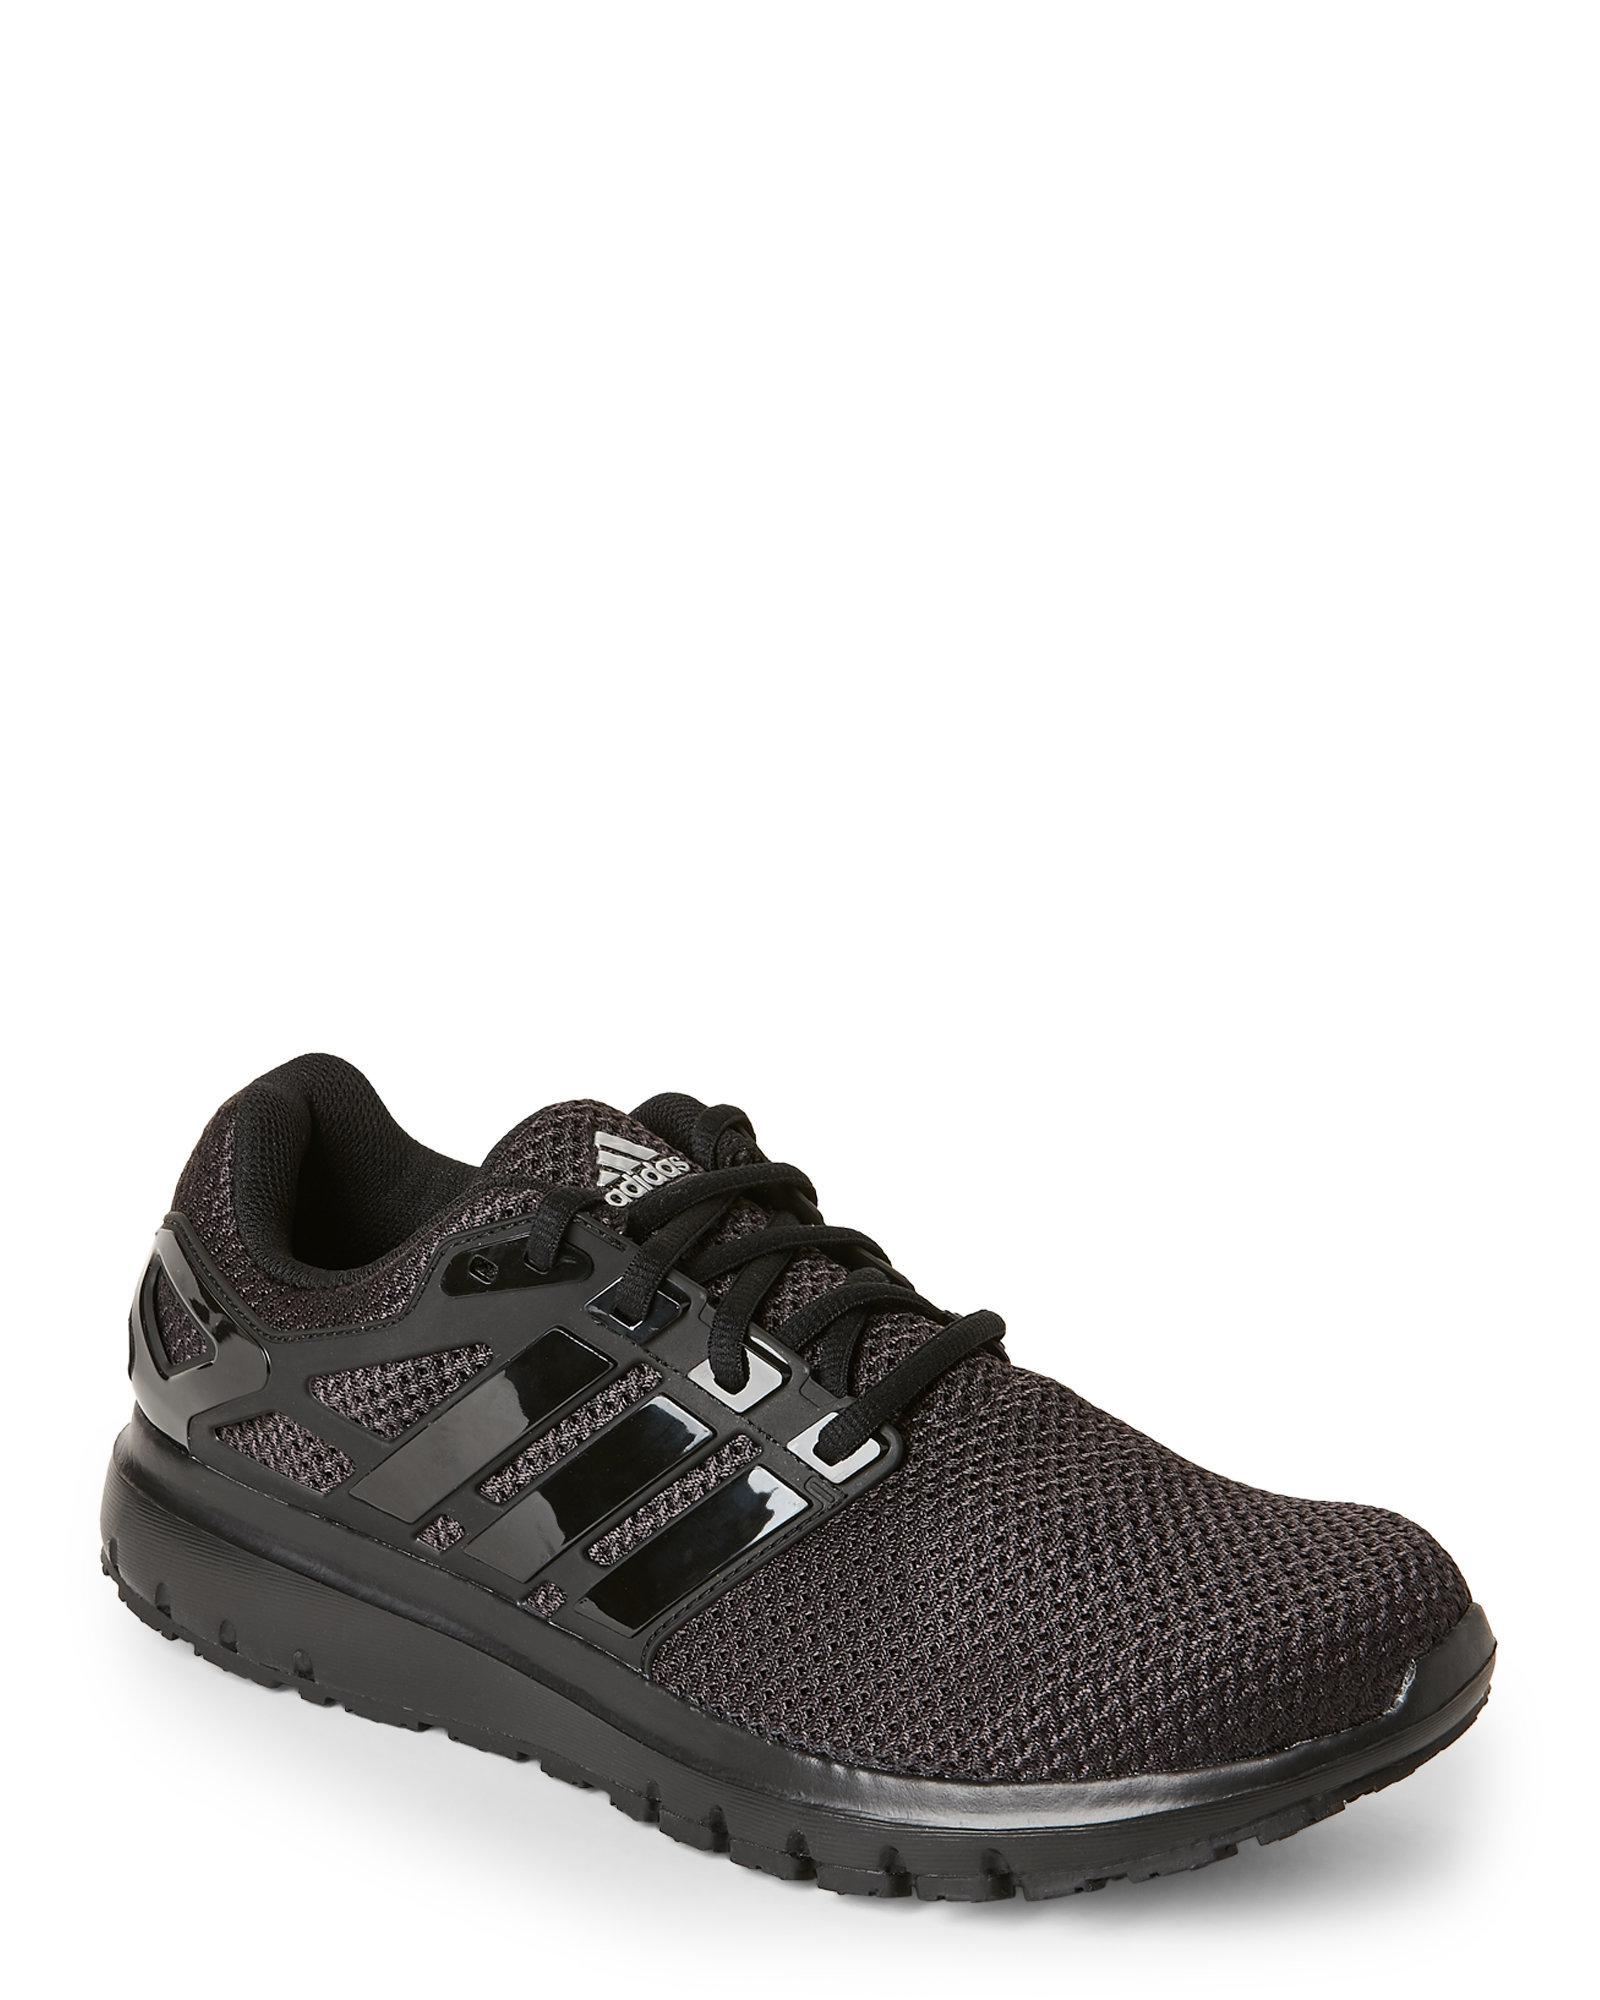 the latest 9f8ce 2763a adidas-Black-Black-Energy-Cloud-Wtc-Running-Sneakers.jpeg